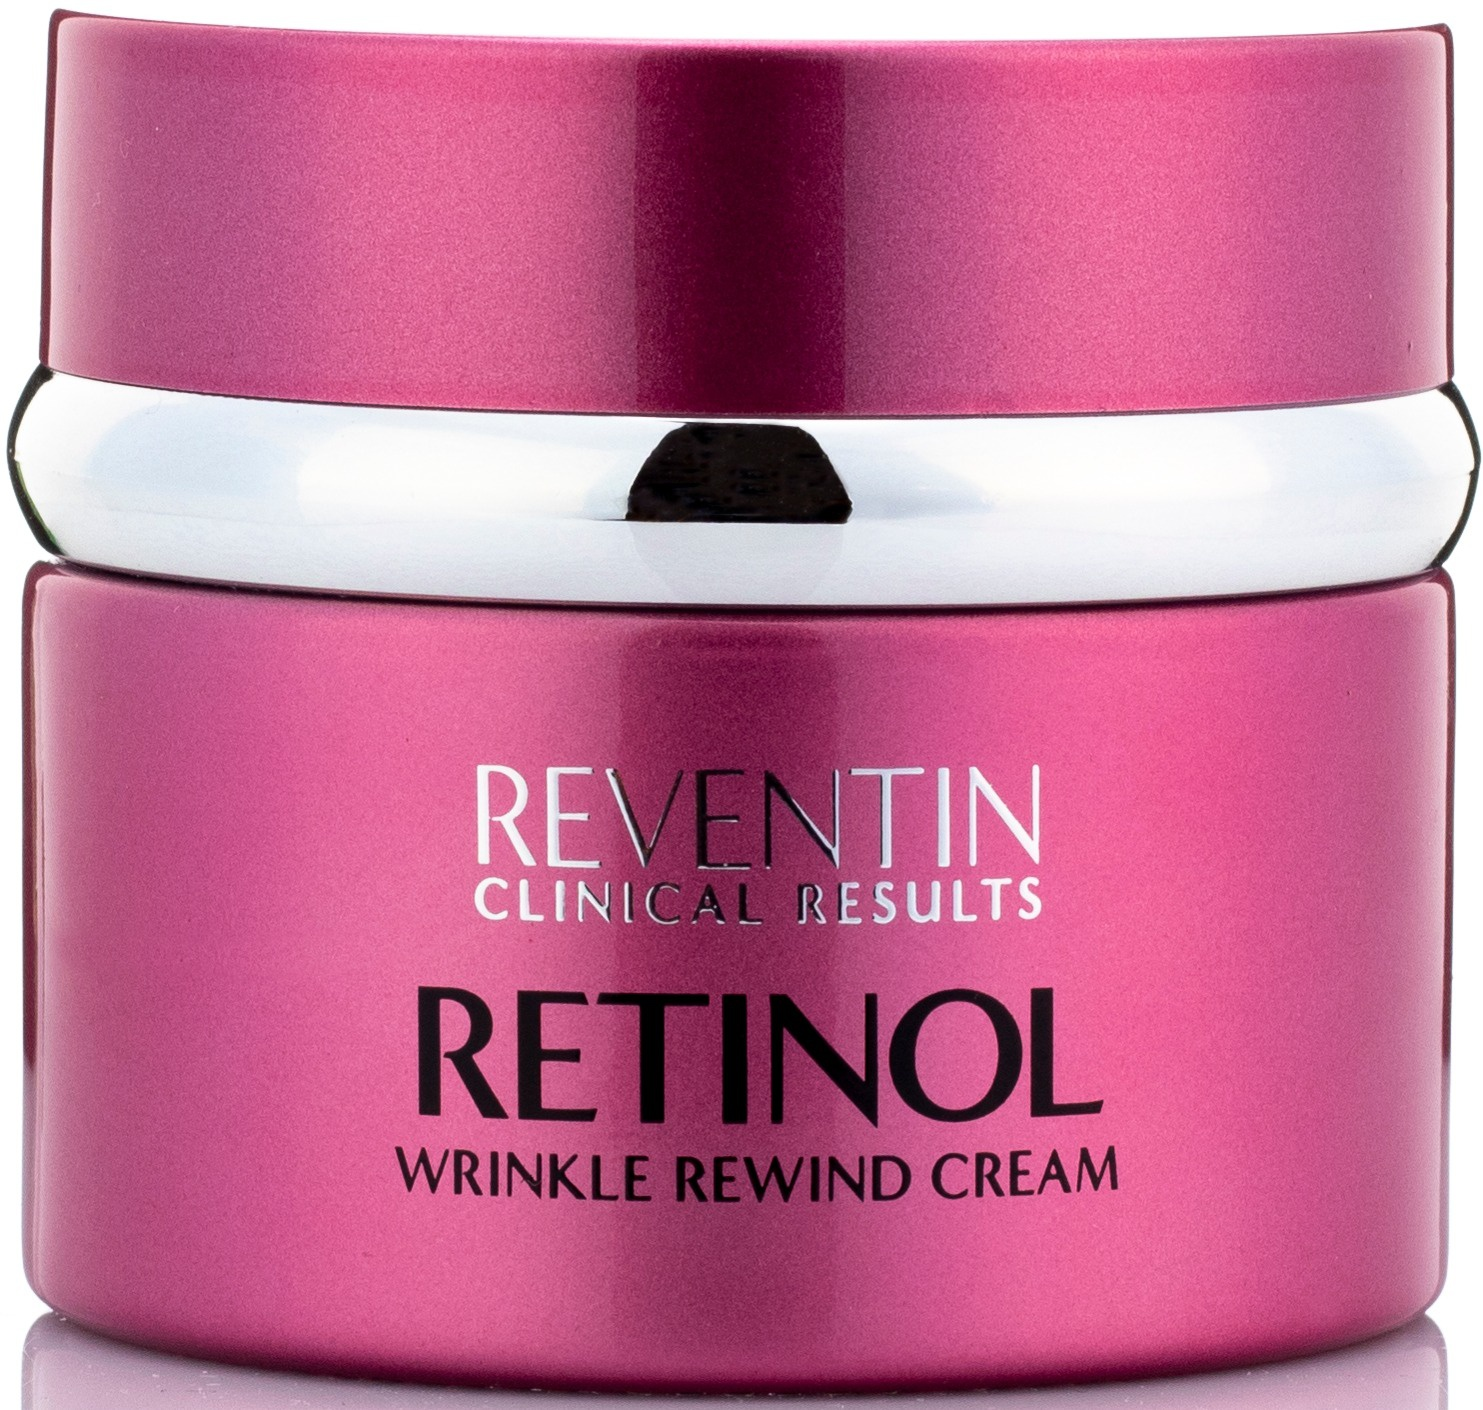 Reventin Clinical Results Wrinkle Rewind Cream